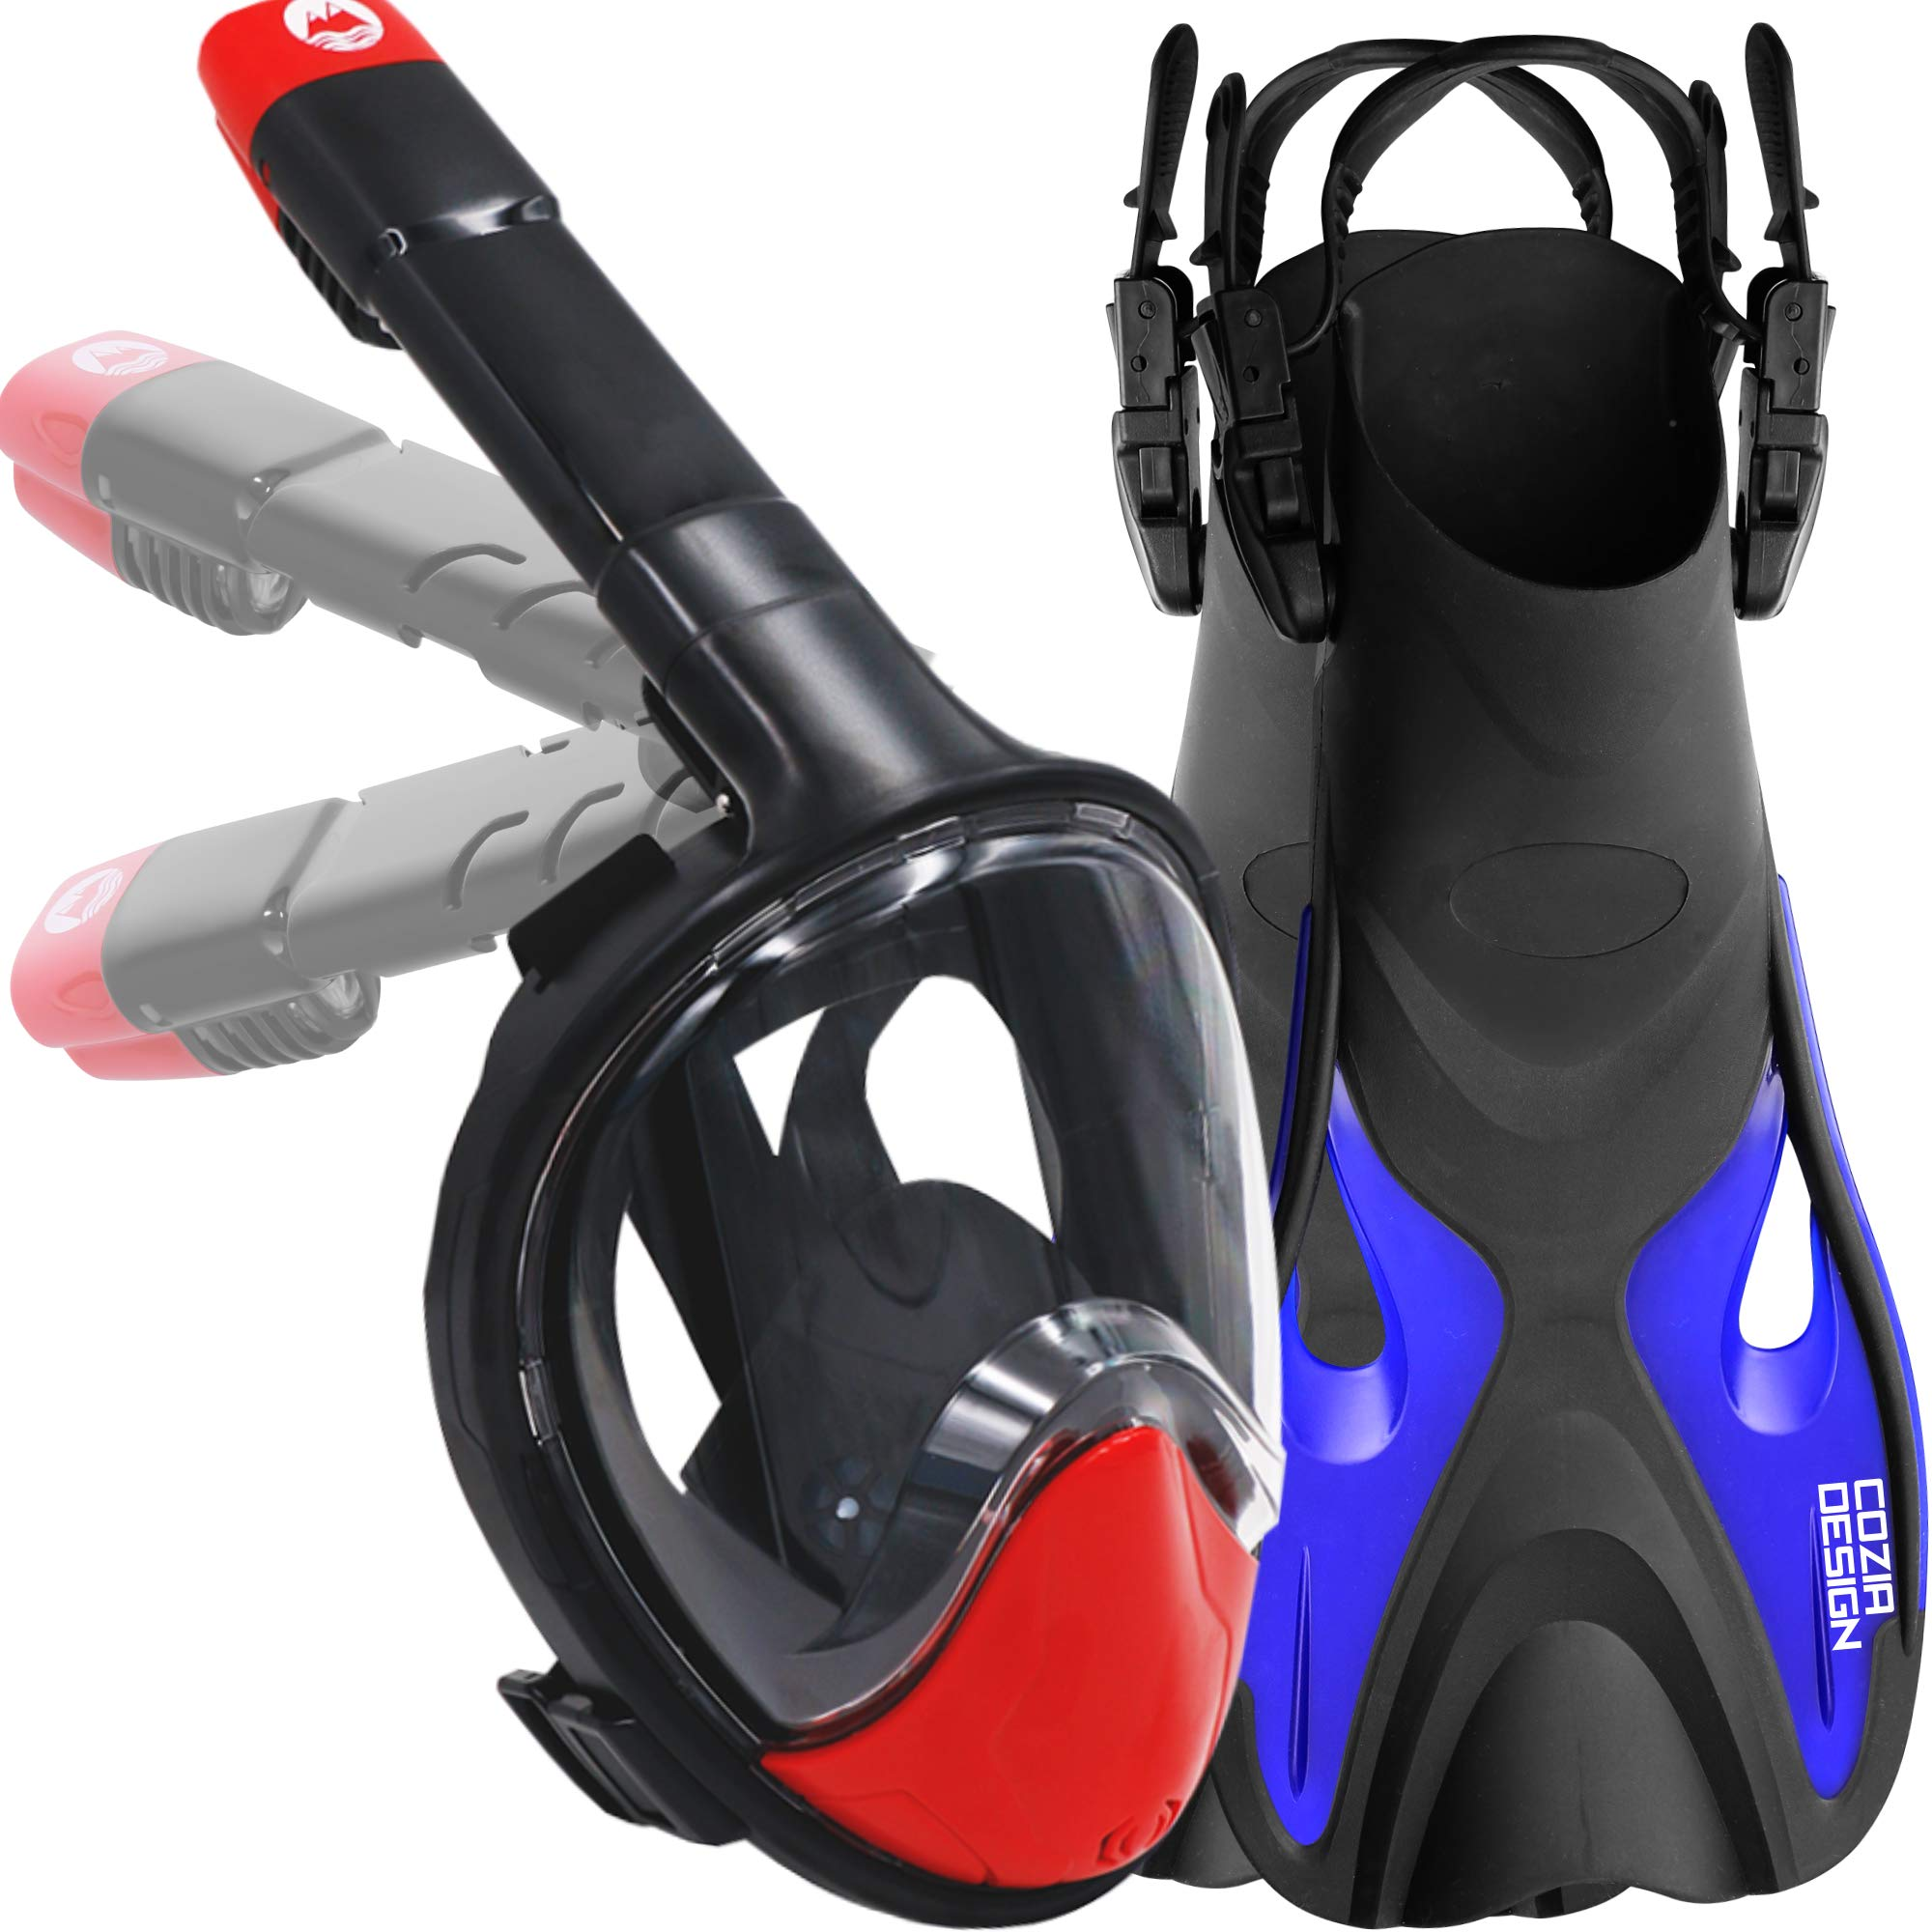 cozia design Snorkel mask with fins (Snorkel Set, Mask M with fins (4.5 to 8.5)) by cozia design